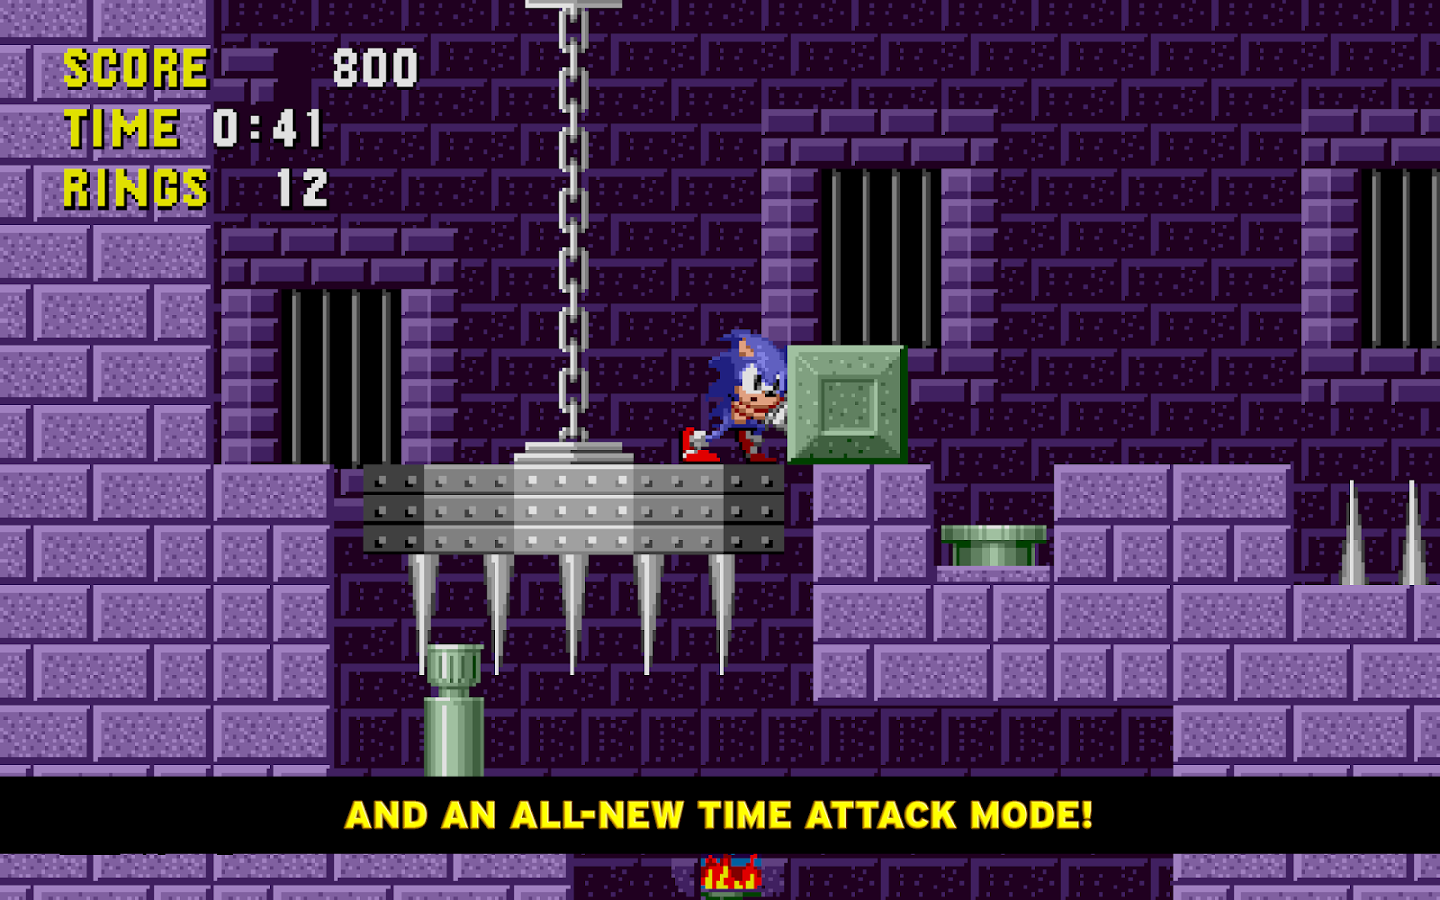 Sonic The Hedgehog Screenshot 7